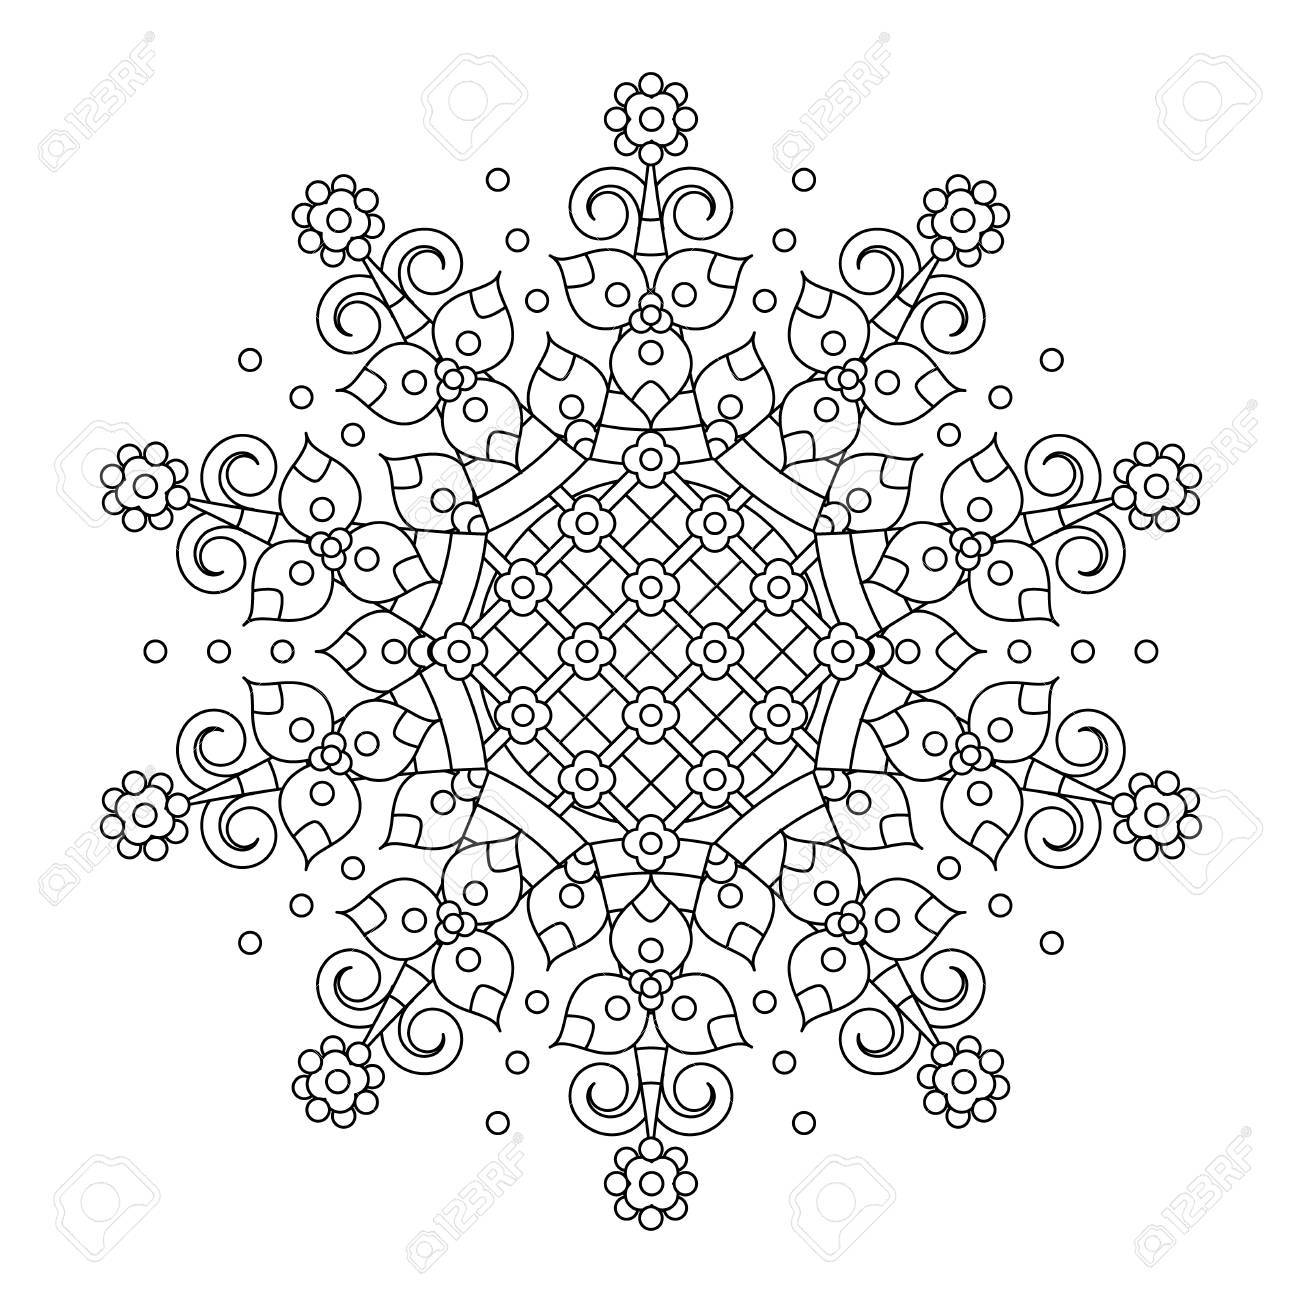 Abstract Mandala Or Whimsical Snowflake Line Art Design Or Coloring ...